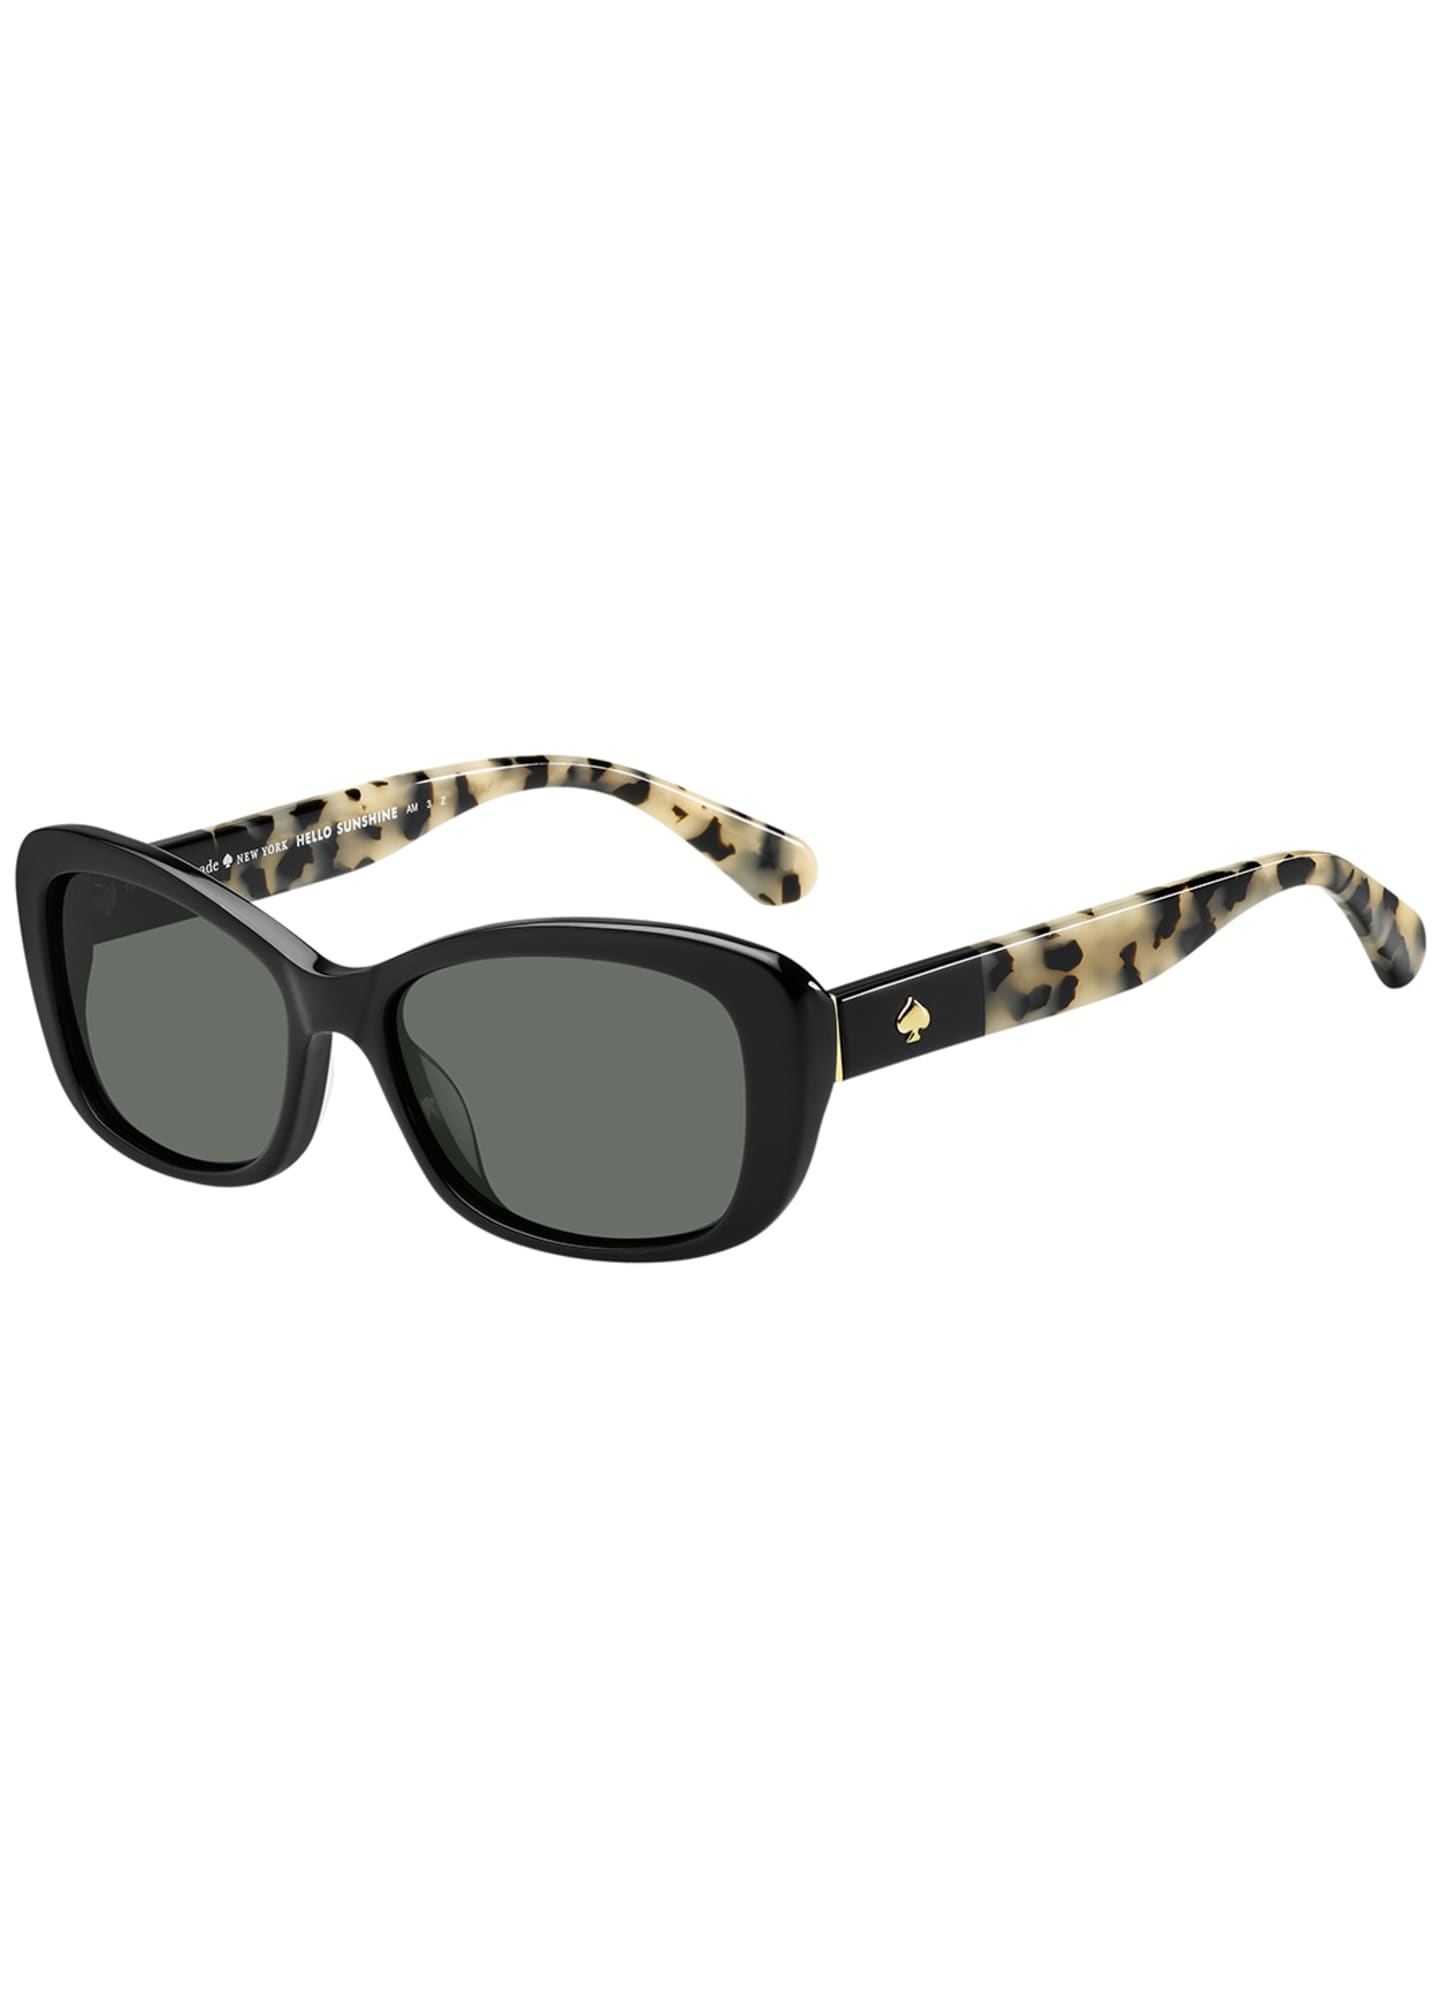 kate spade new york claretta two-tone oval sunglasses